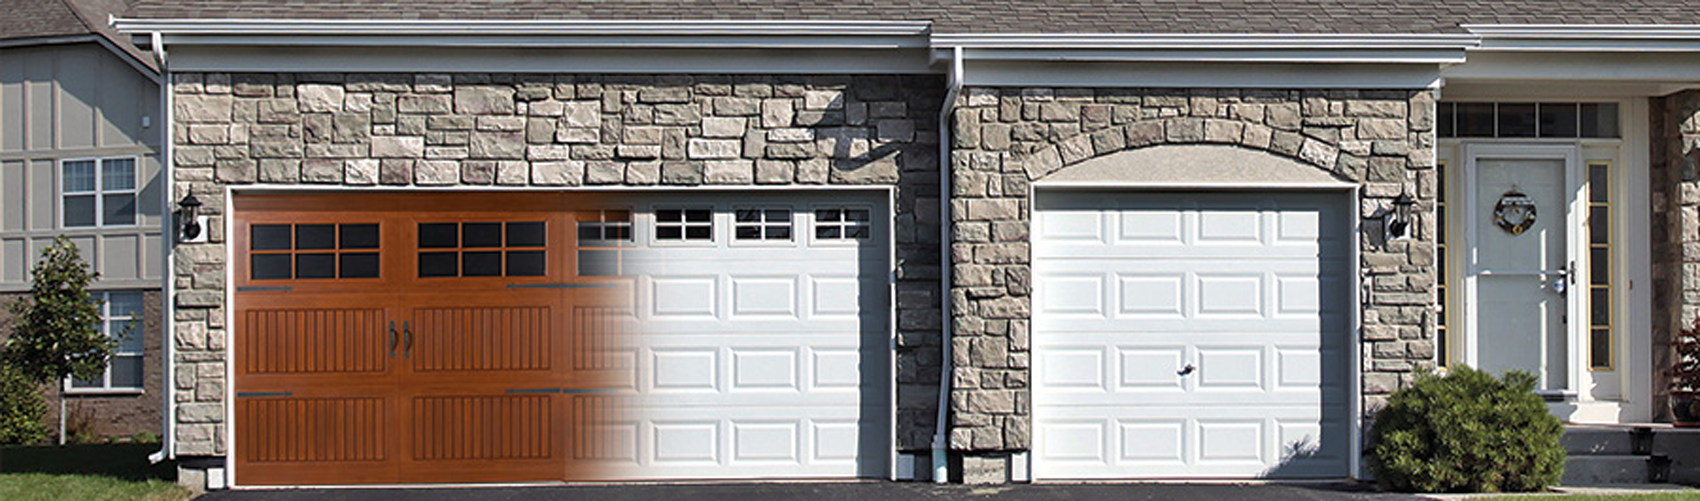 Design a Door & Overhead Door Company of Houston - Houston garage door sales ...